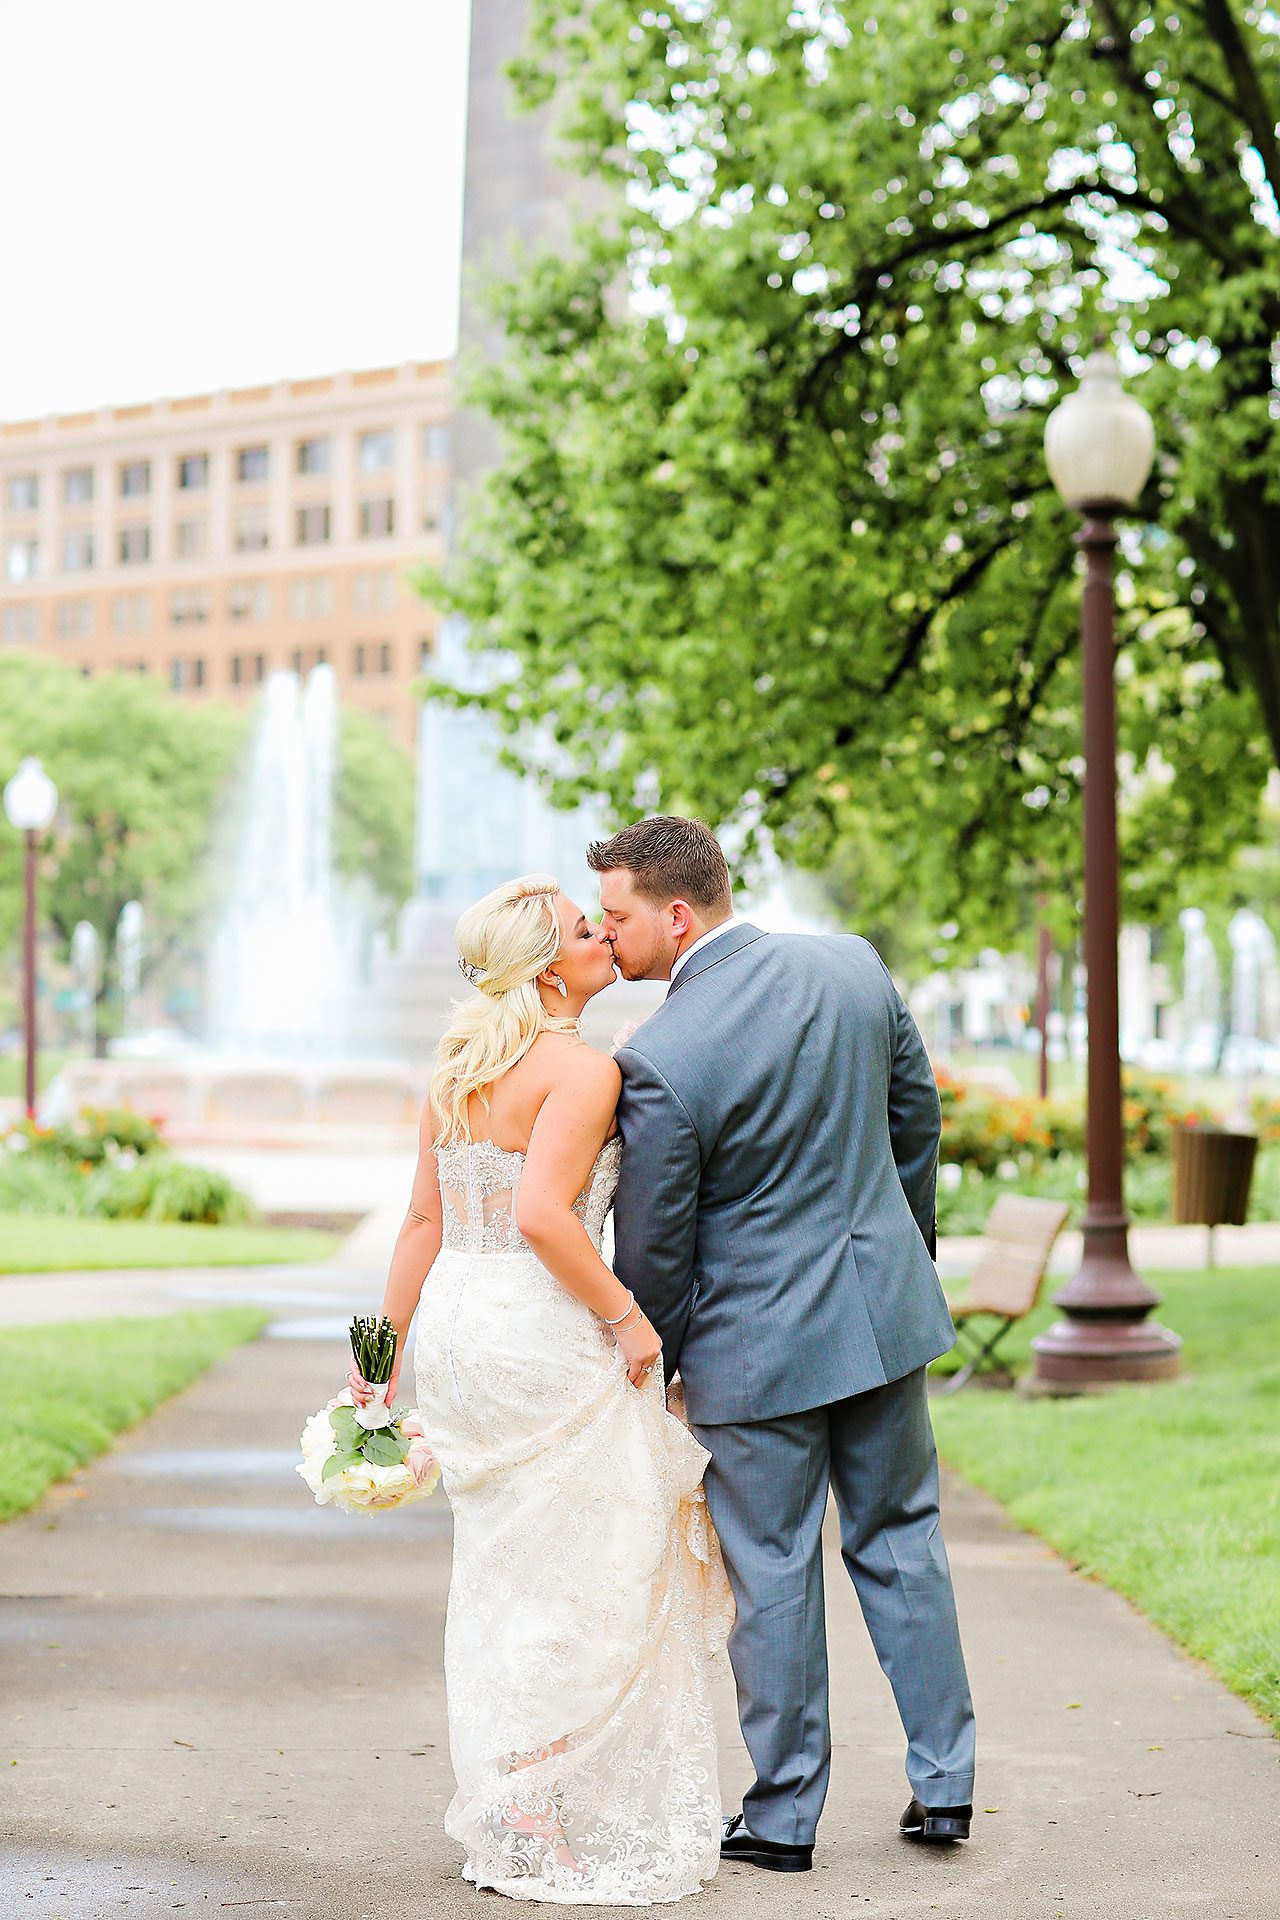 Lauren Bryan Scottish Rite Indianapolis Wedding 101